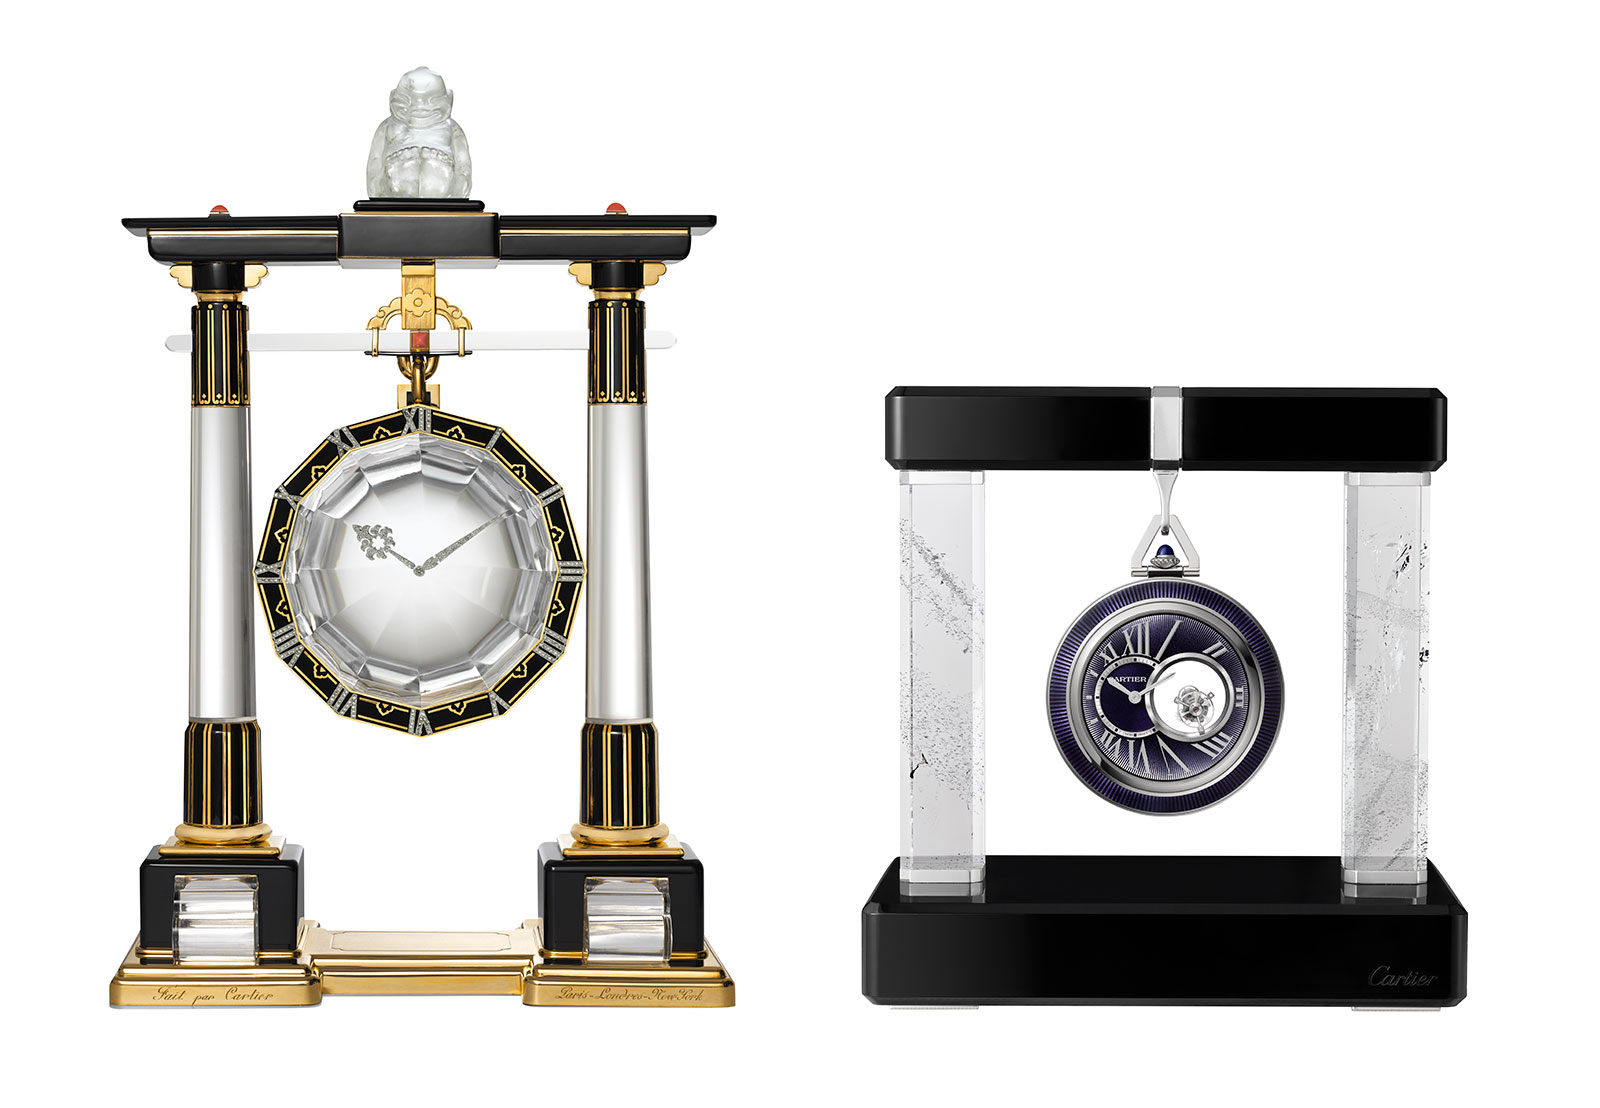 CARTIER Crystallisation Of Time Tokyo 2019 mystery clock